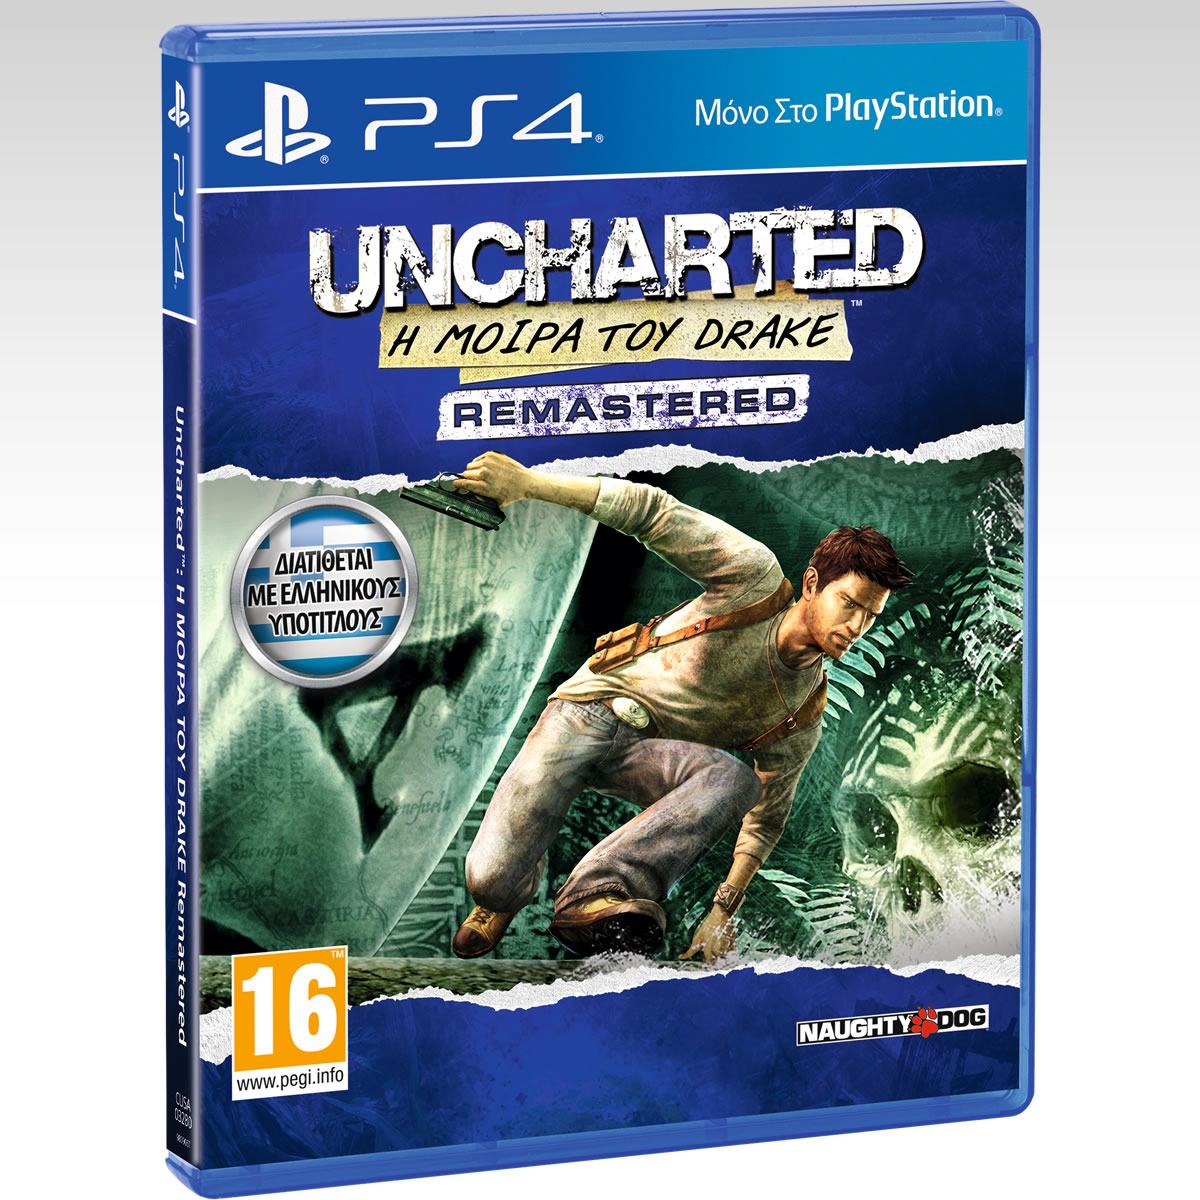 UNCHARTED: DRAKE'S FORTUNE - UNCHARTED: Η ΜΟΙΡΑ ΤΟΥ DRAKE Remastered [ΕΛΛΗΝΙΚΟ] (PS4)